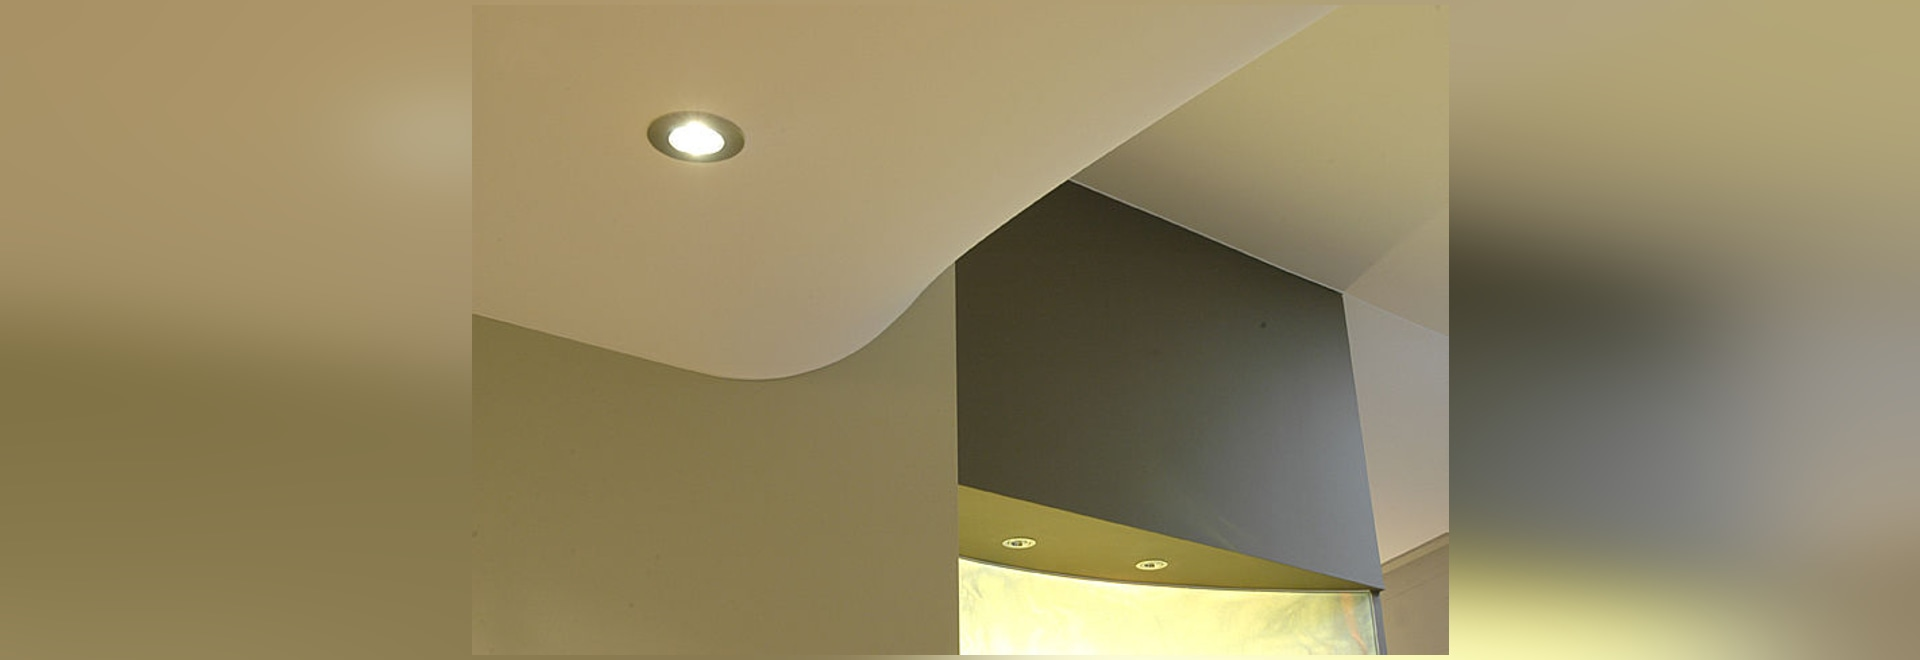 Design Stretch Ceilings By Swal Swal